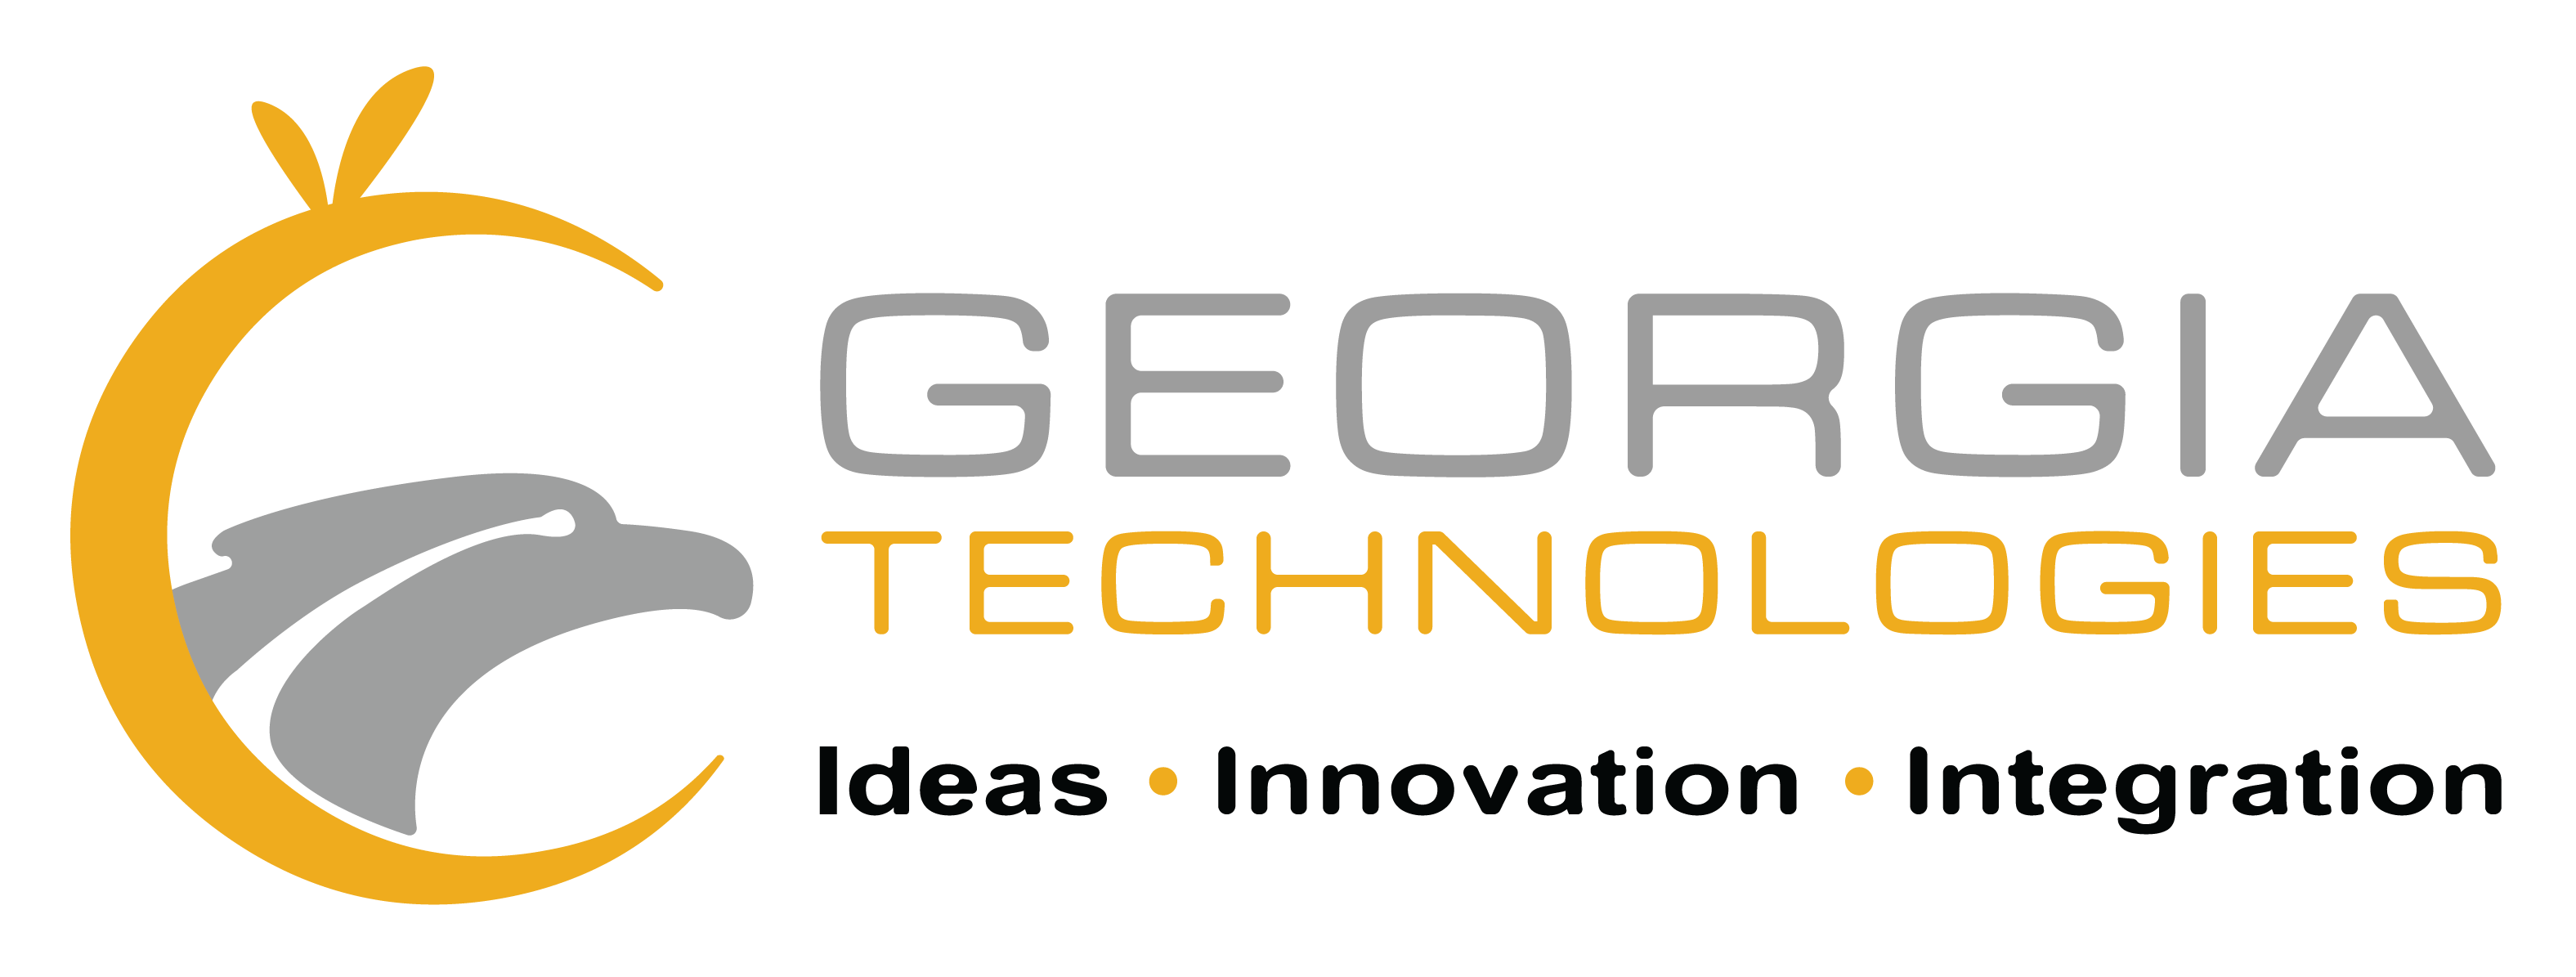 GA Software Technologies